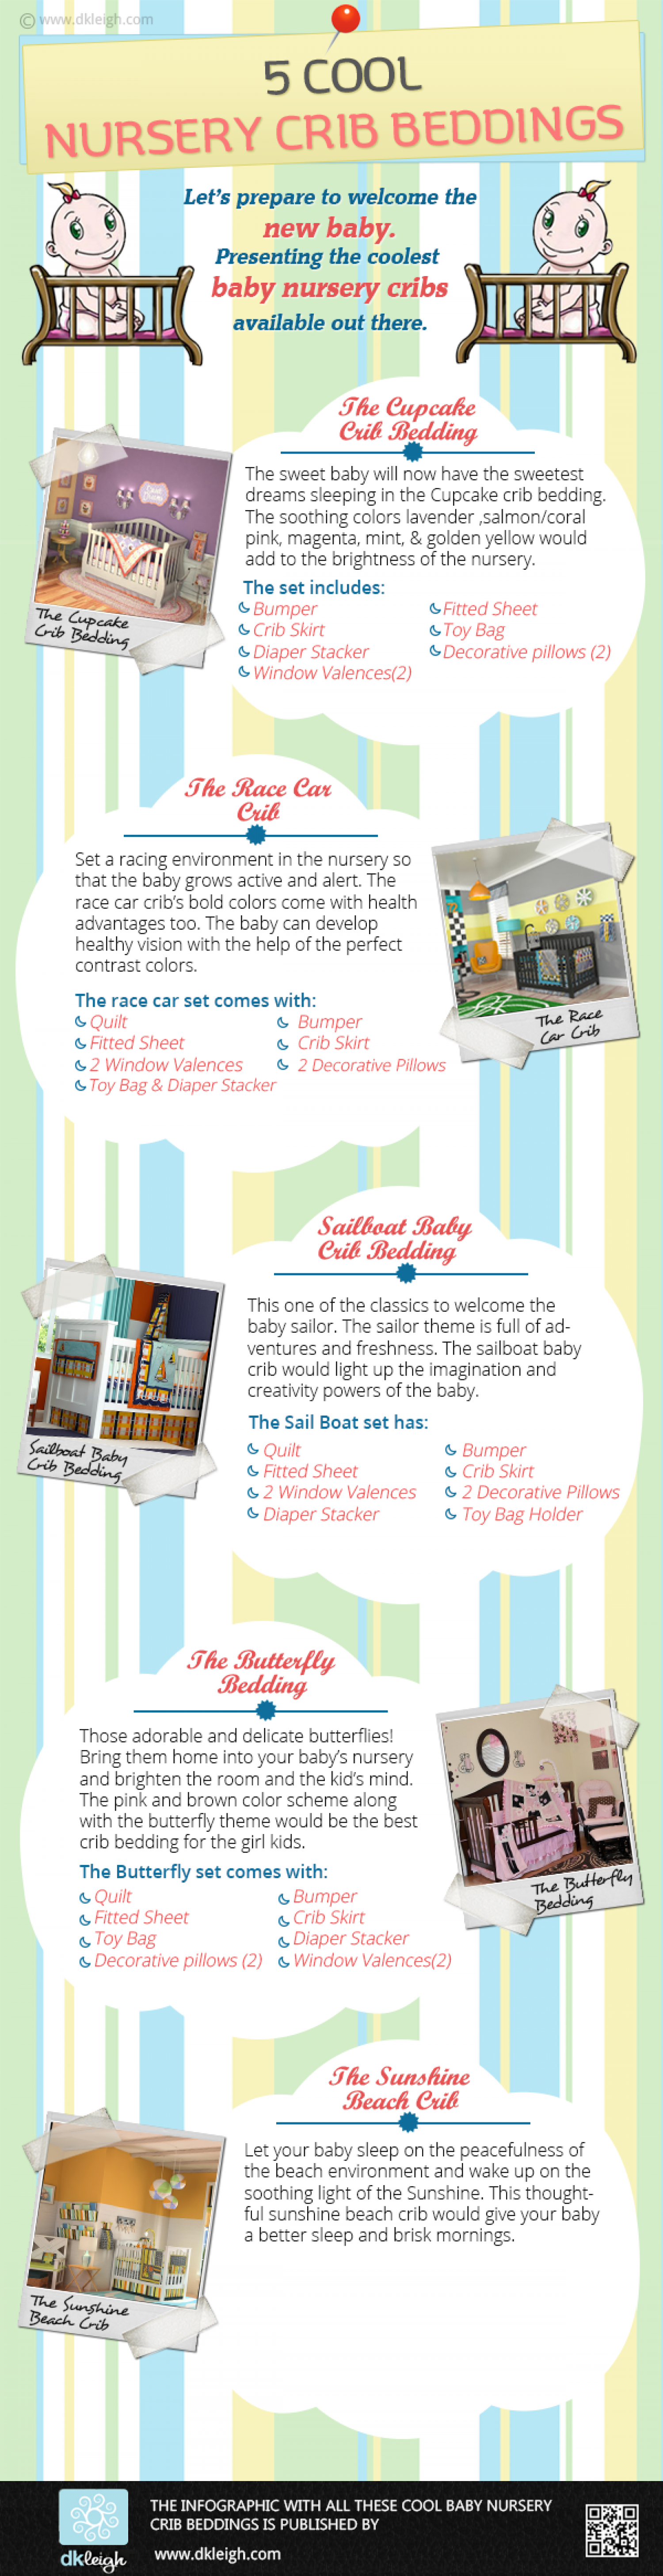 Check Out 5 Cool Nursery Crib Beddings Infographic